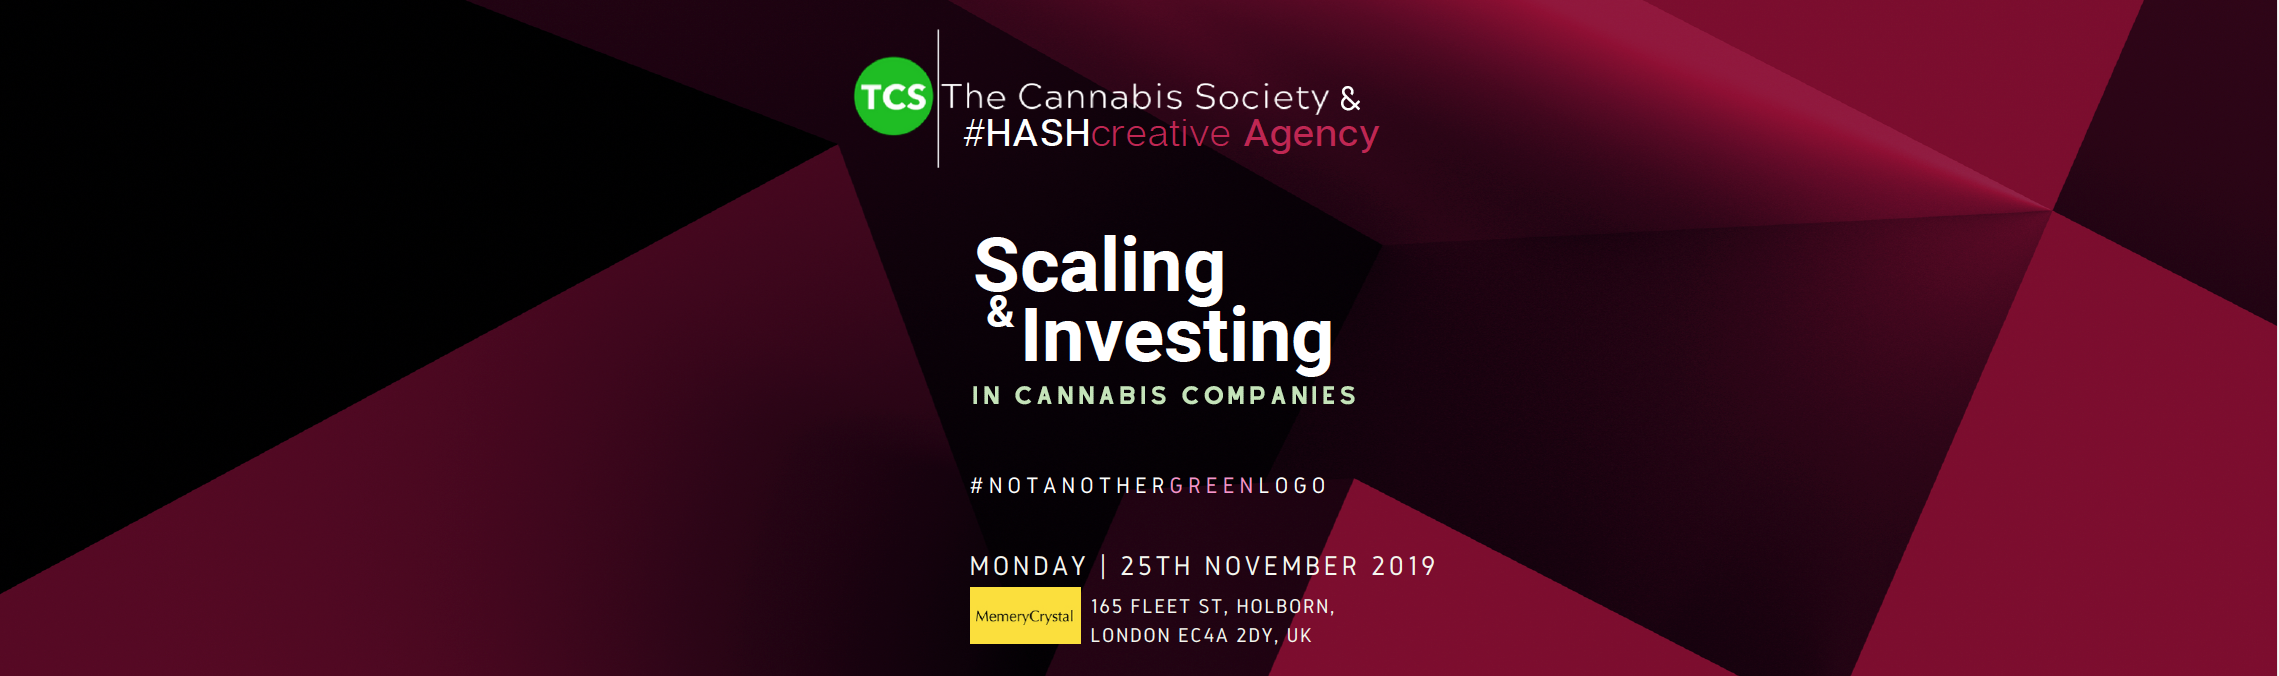 The Cannabis Society Scaling & Investing Conference